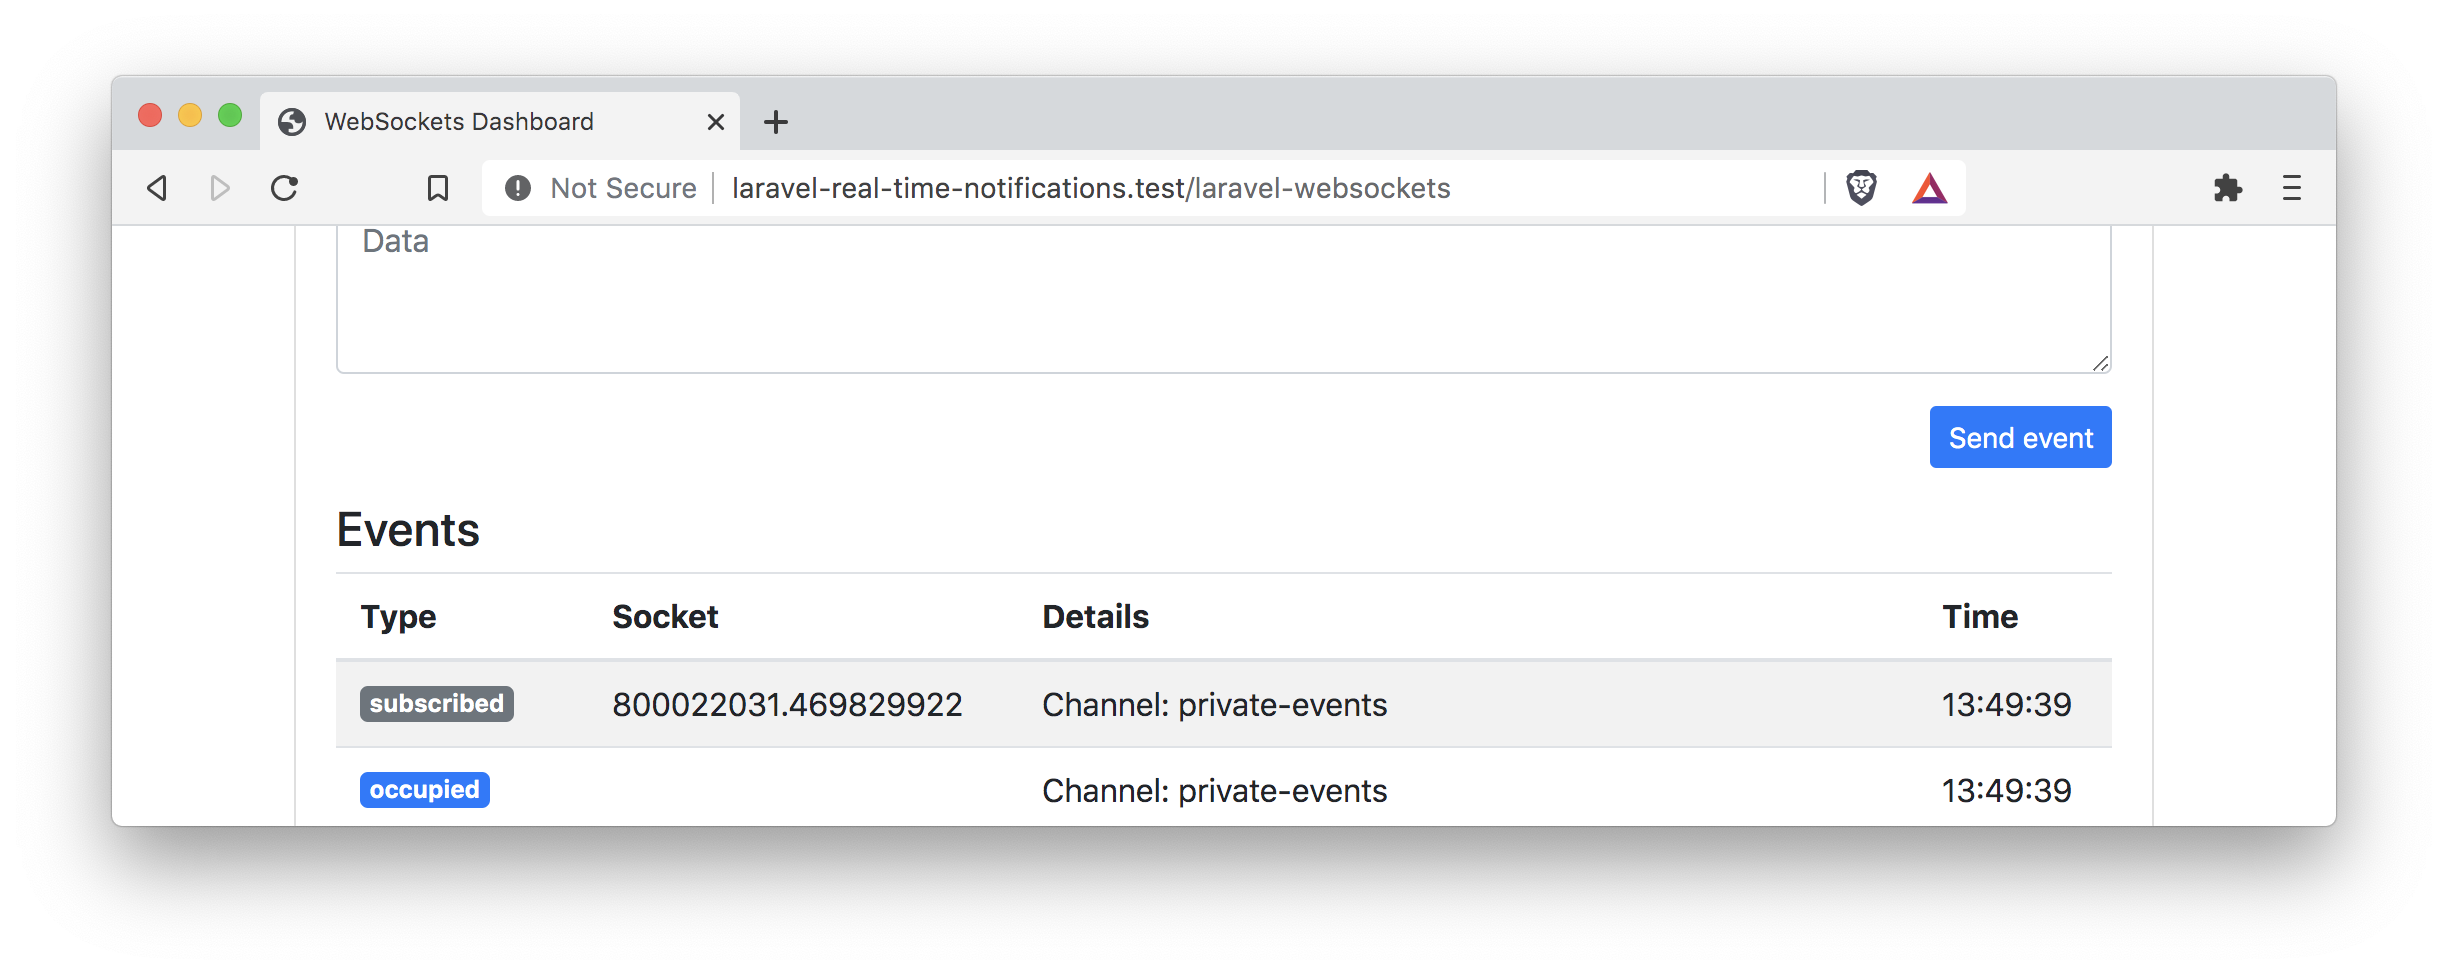 Debug Dashboard subscribed to private events channel